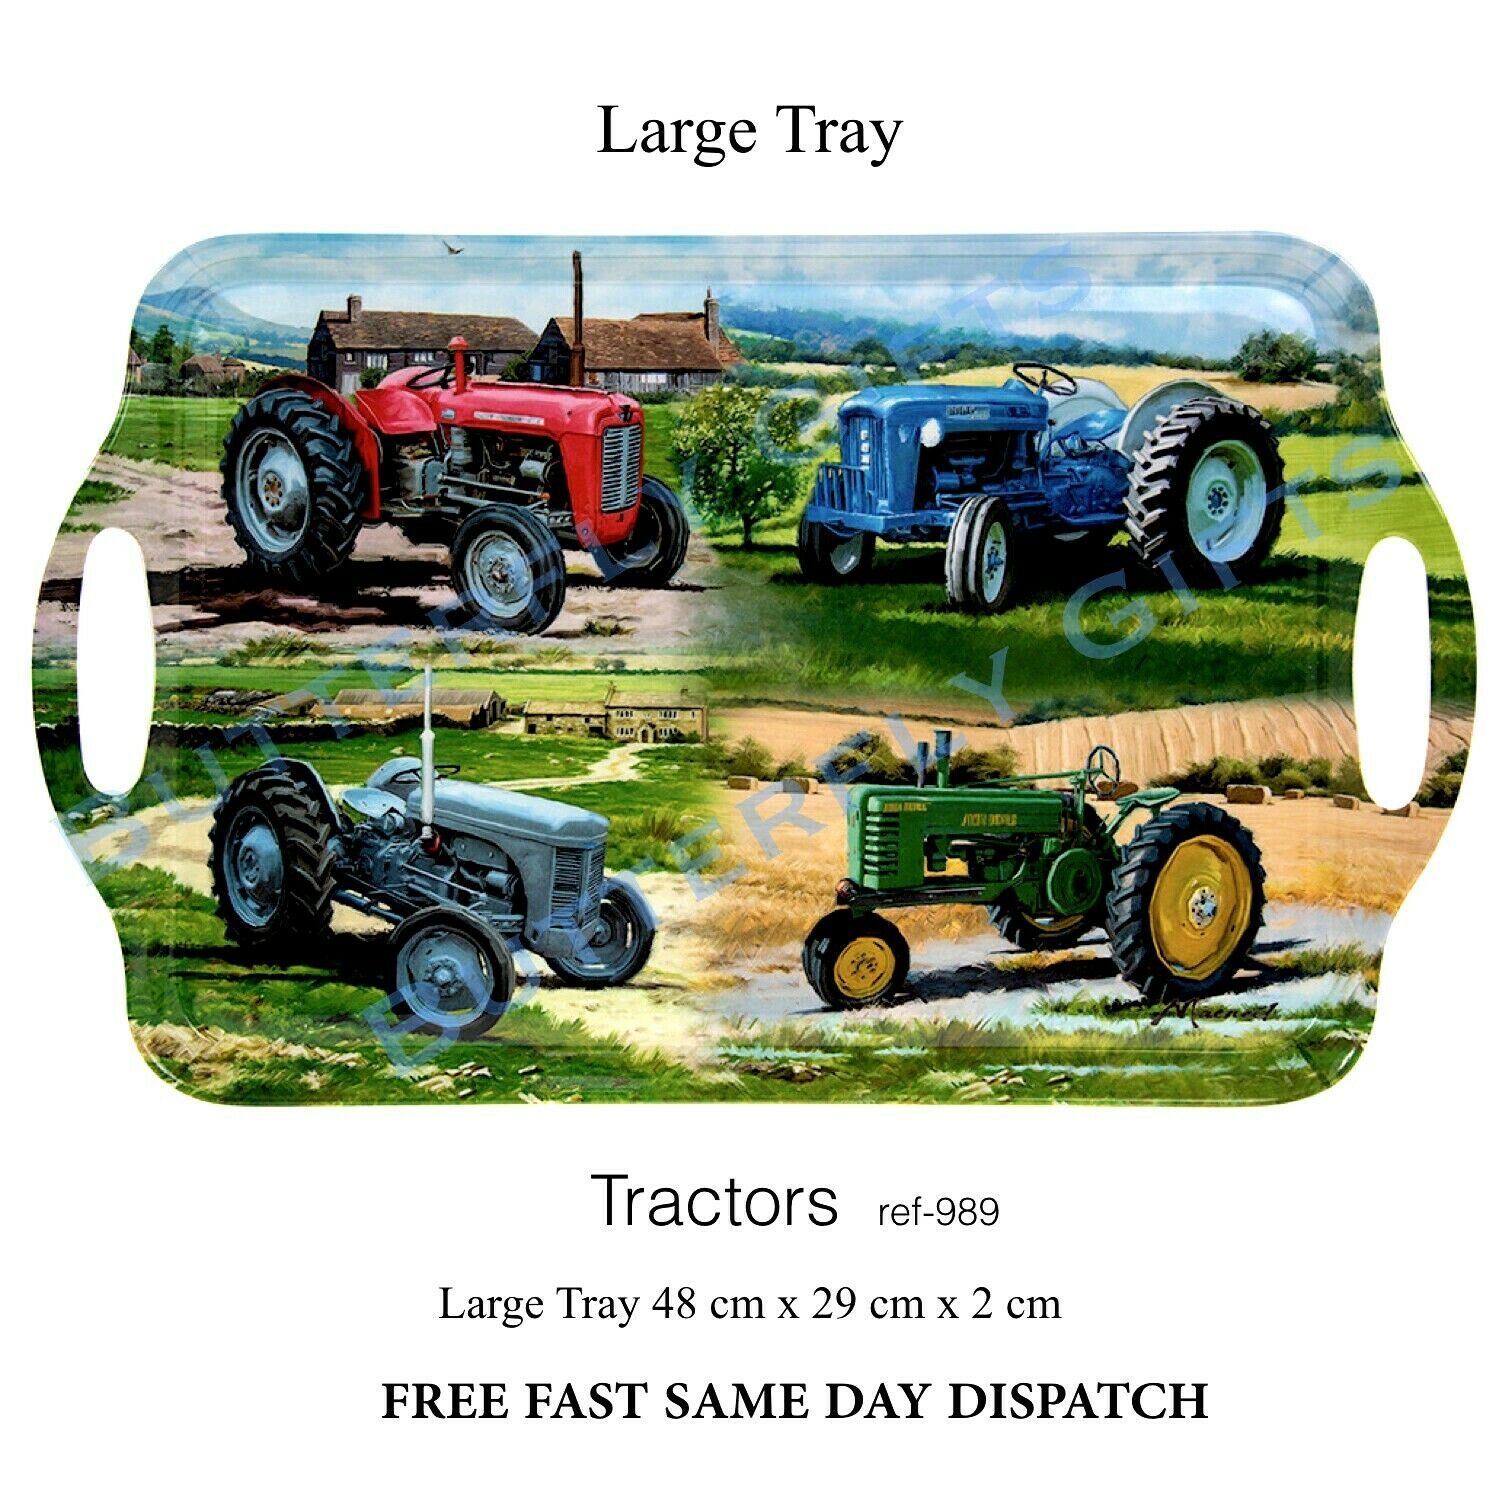 Tractors Large Tray 902